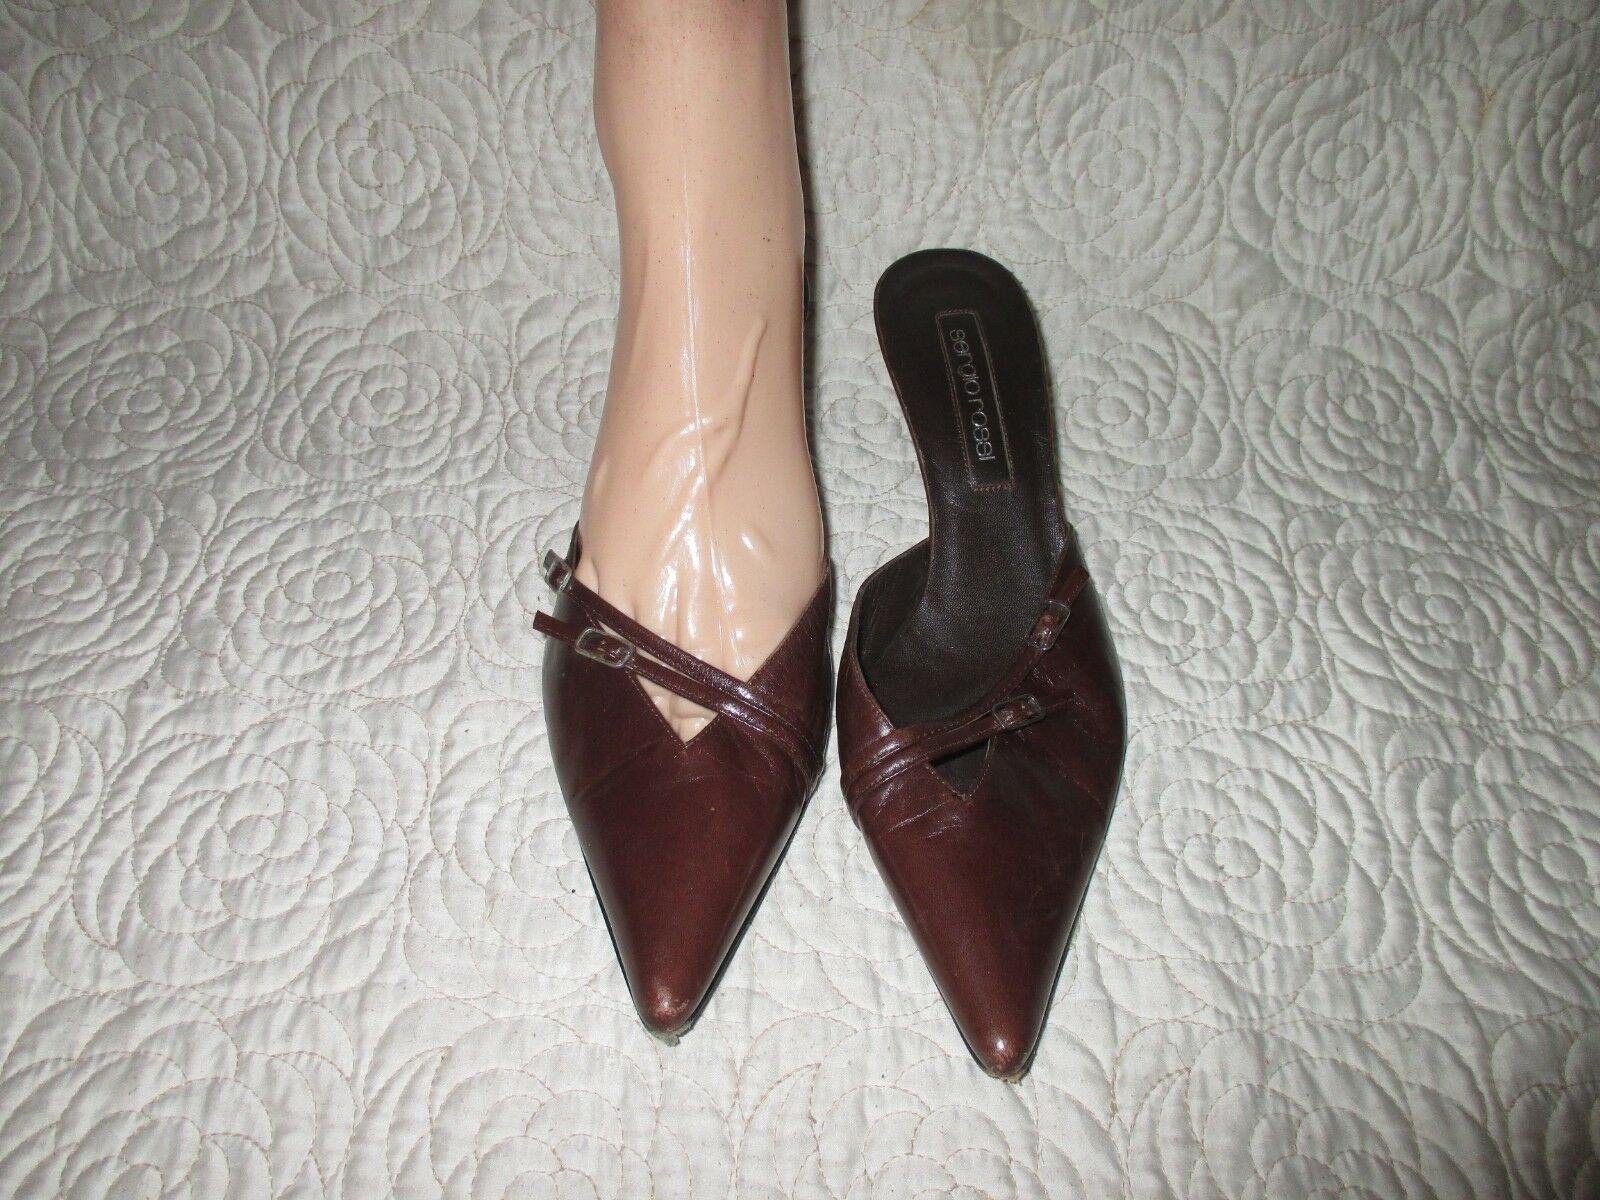 Sergio Rossi Brown leather  Mules  with buckle designs   SIZE 39